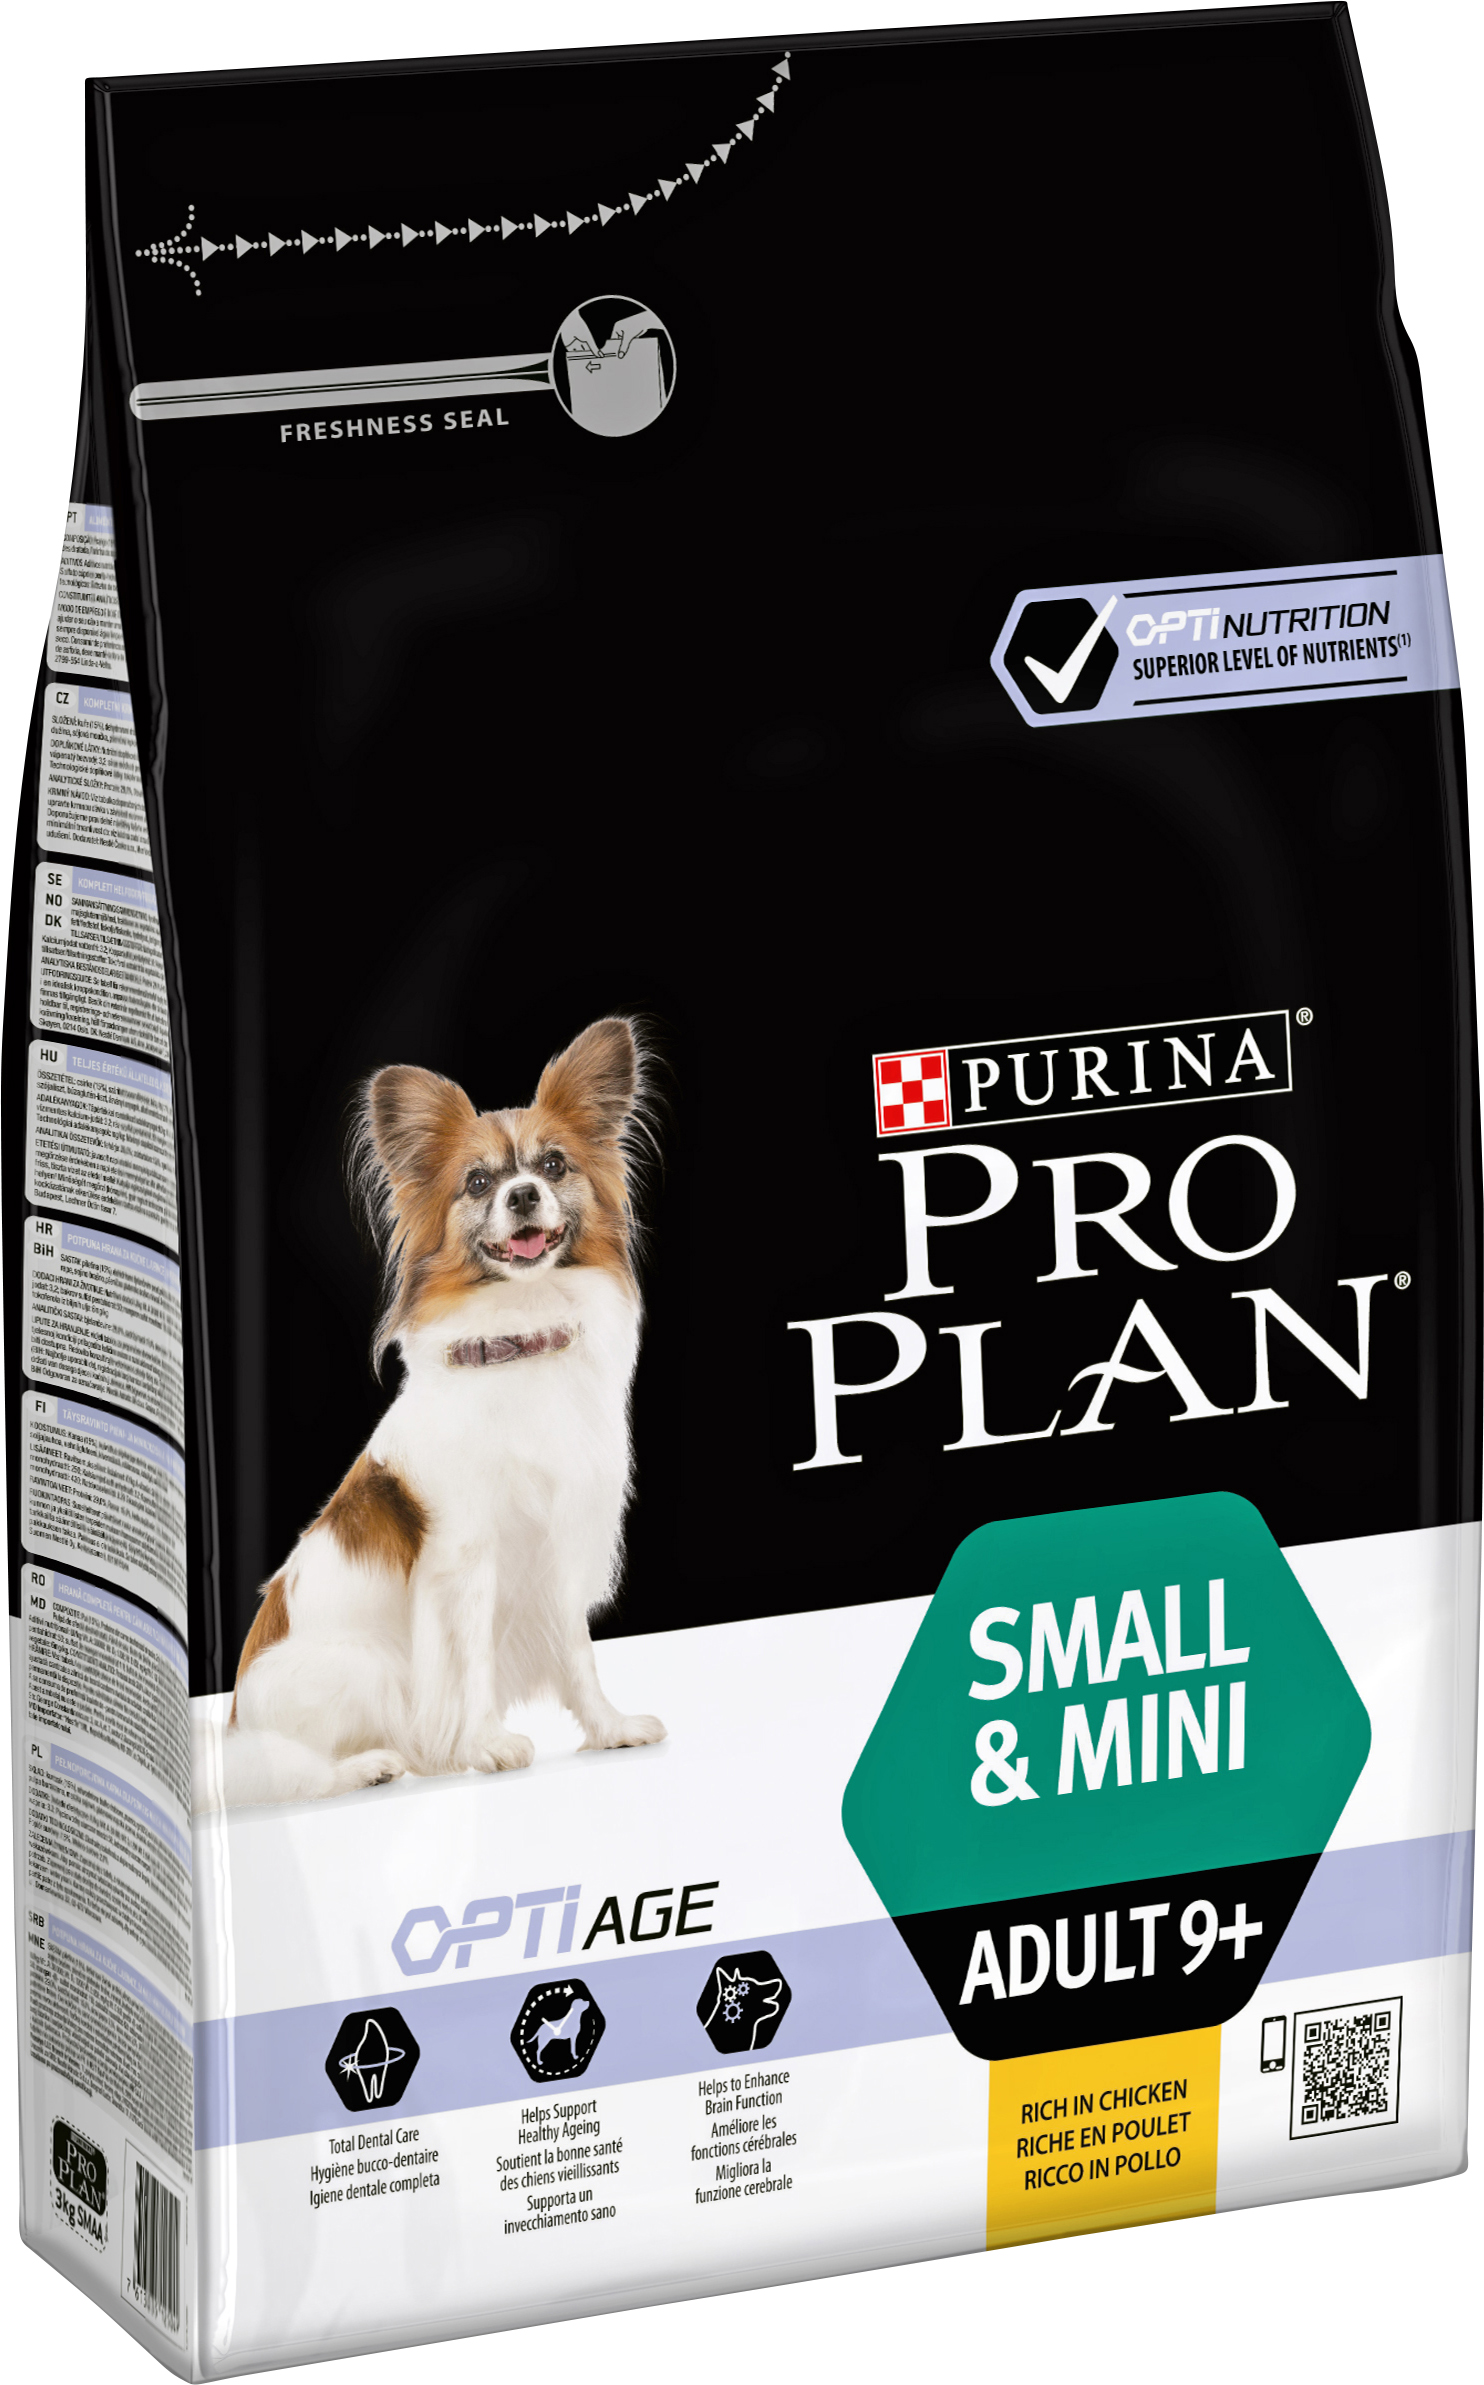 Hundfoder Pro Plan Small & Mini Adult 9+, 3 kg